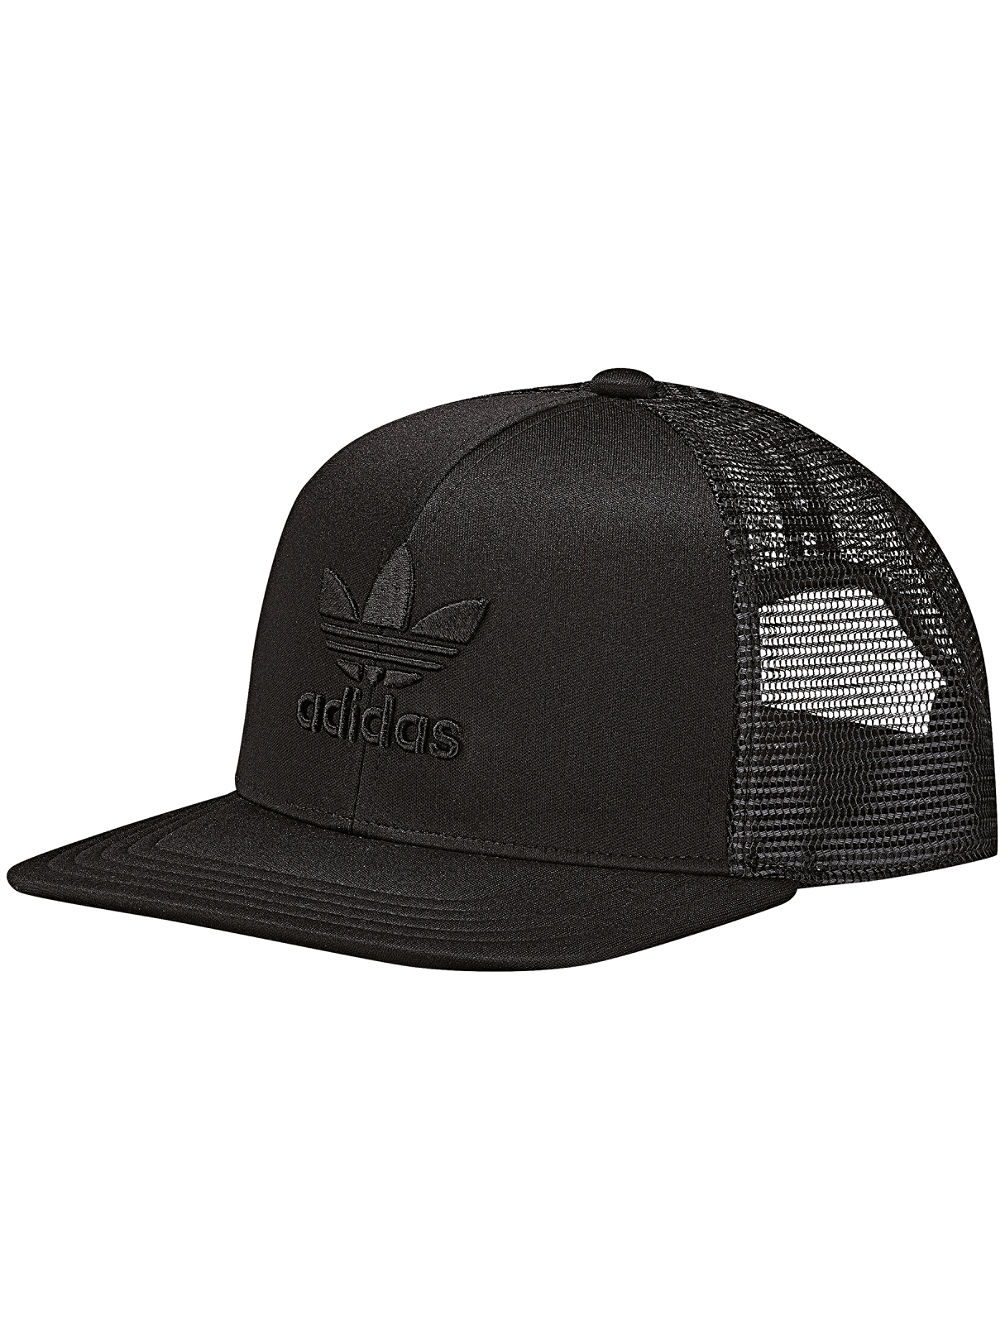 ce2a046f Buy adidas Originals Trefoil Heritage Trucker Cap online at Blue Tomato